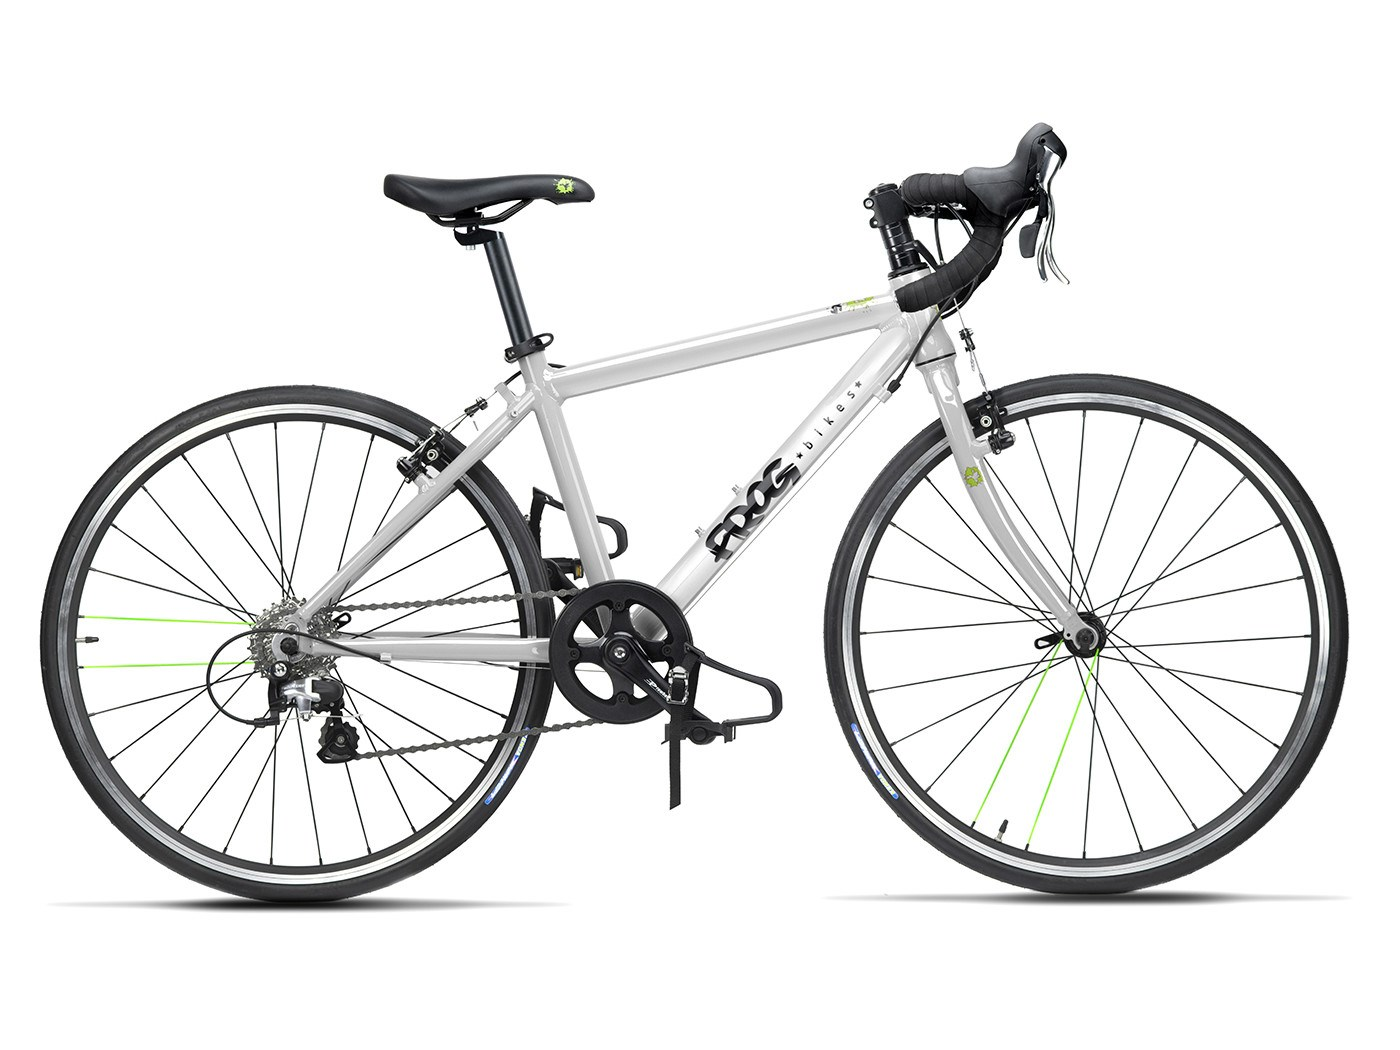 Frog 2018 67 24 inch Kids Road / Cyclocross Bike £445.00